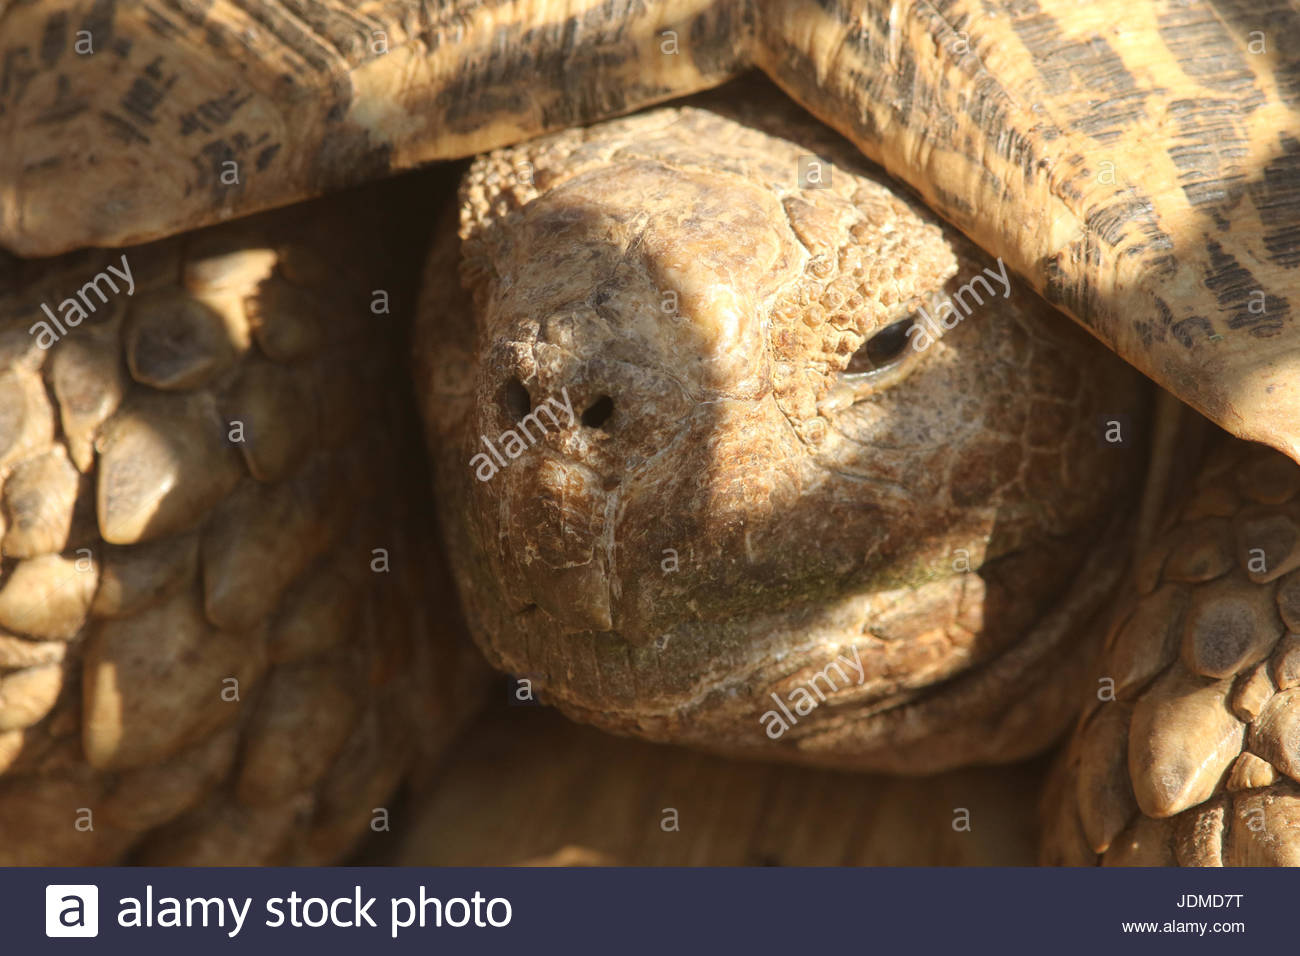 Close up of a Leopard tortoise, Stigmochelys pardalis. - Stock Image